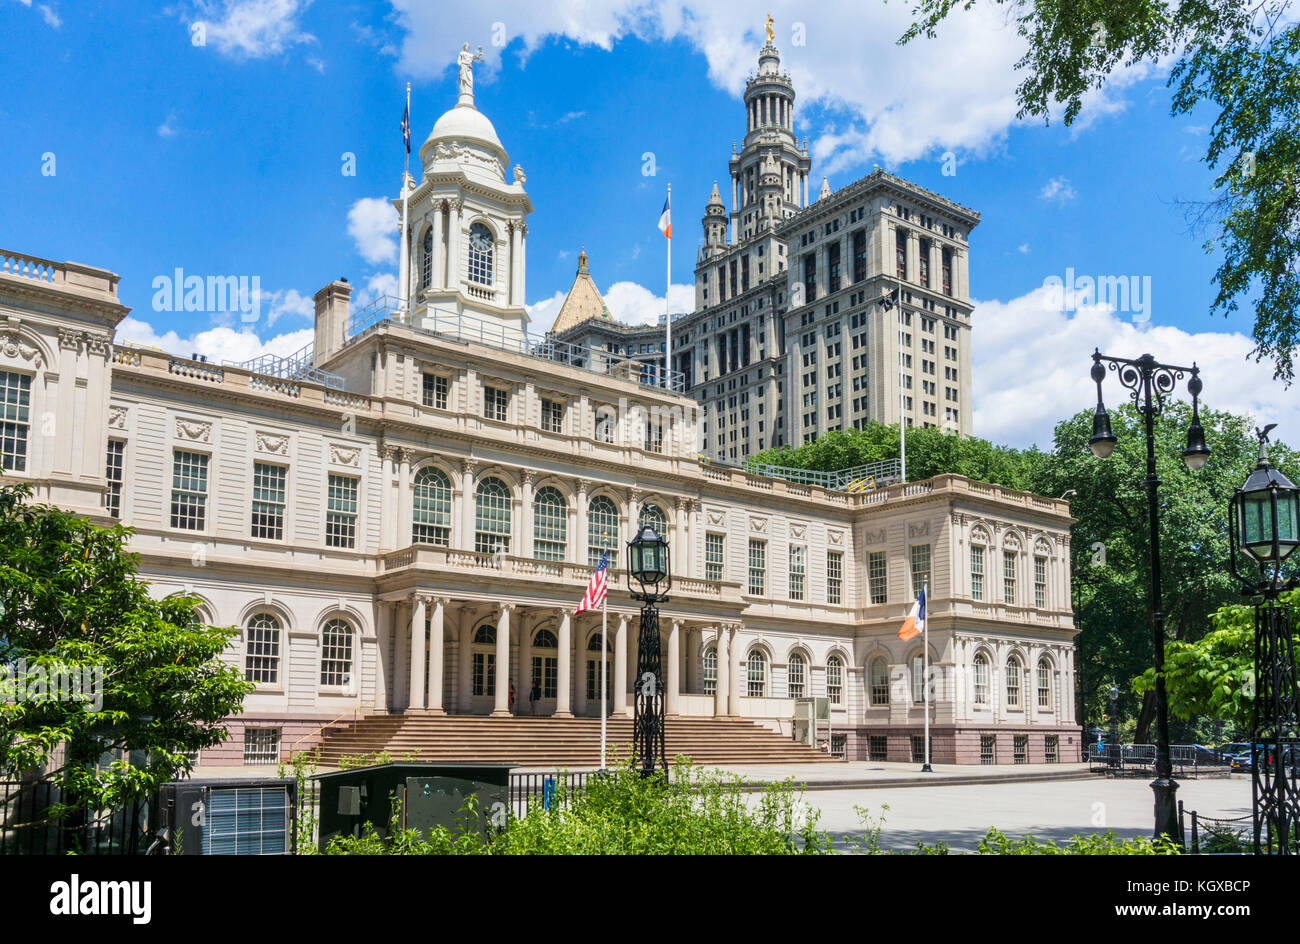 new york city hall New york usa new york New York City Hall New York City government offices city hall park Manhattan - Stock Image